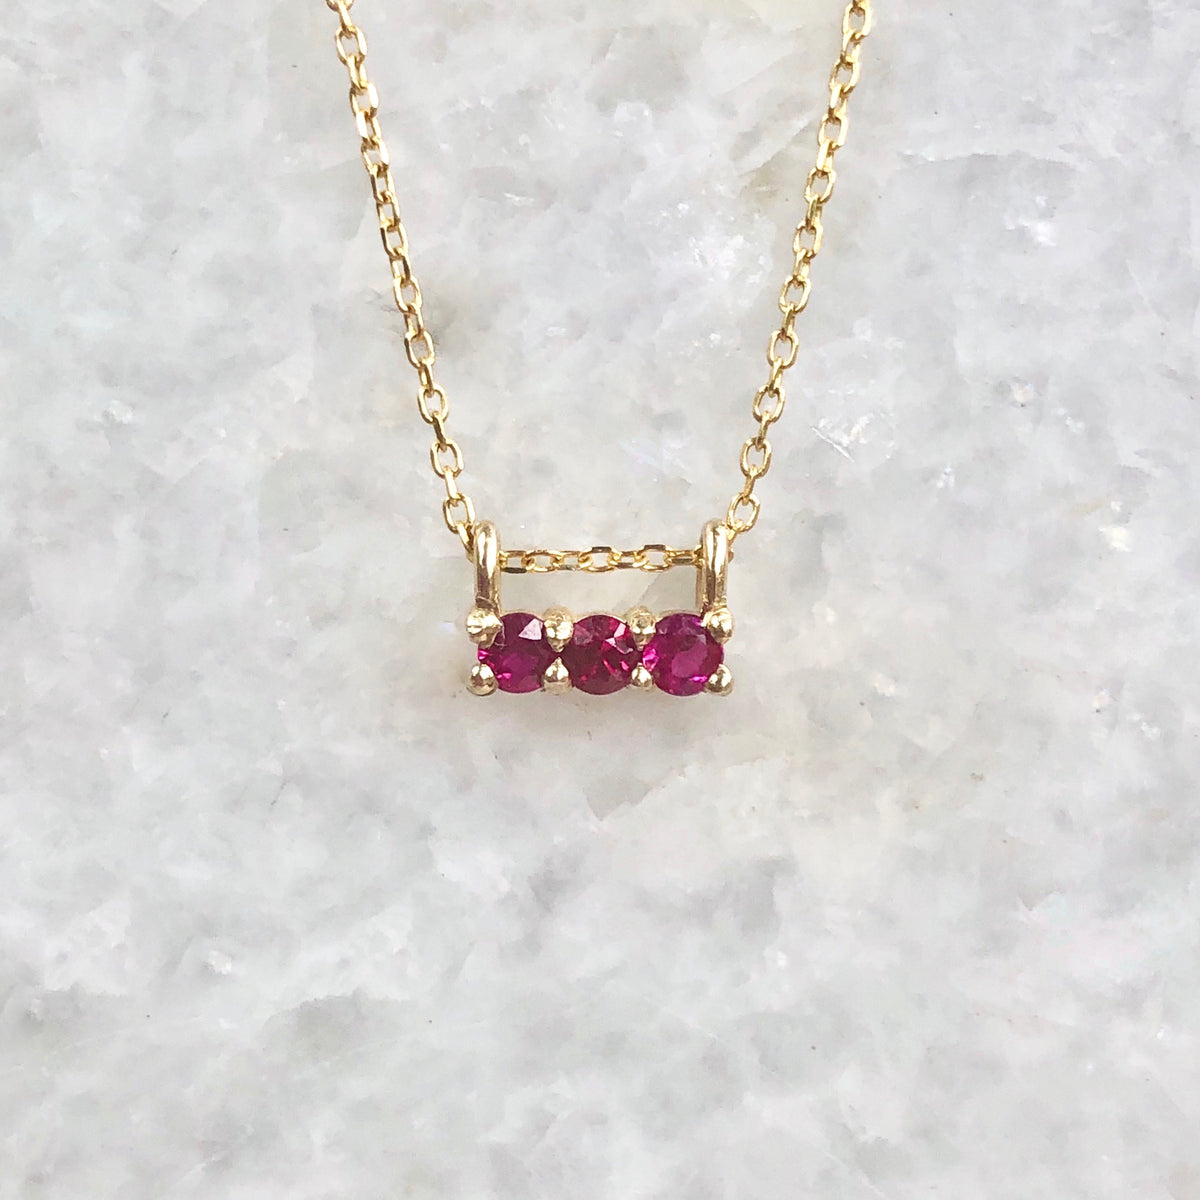 3s ruby necklace